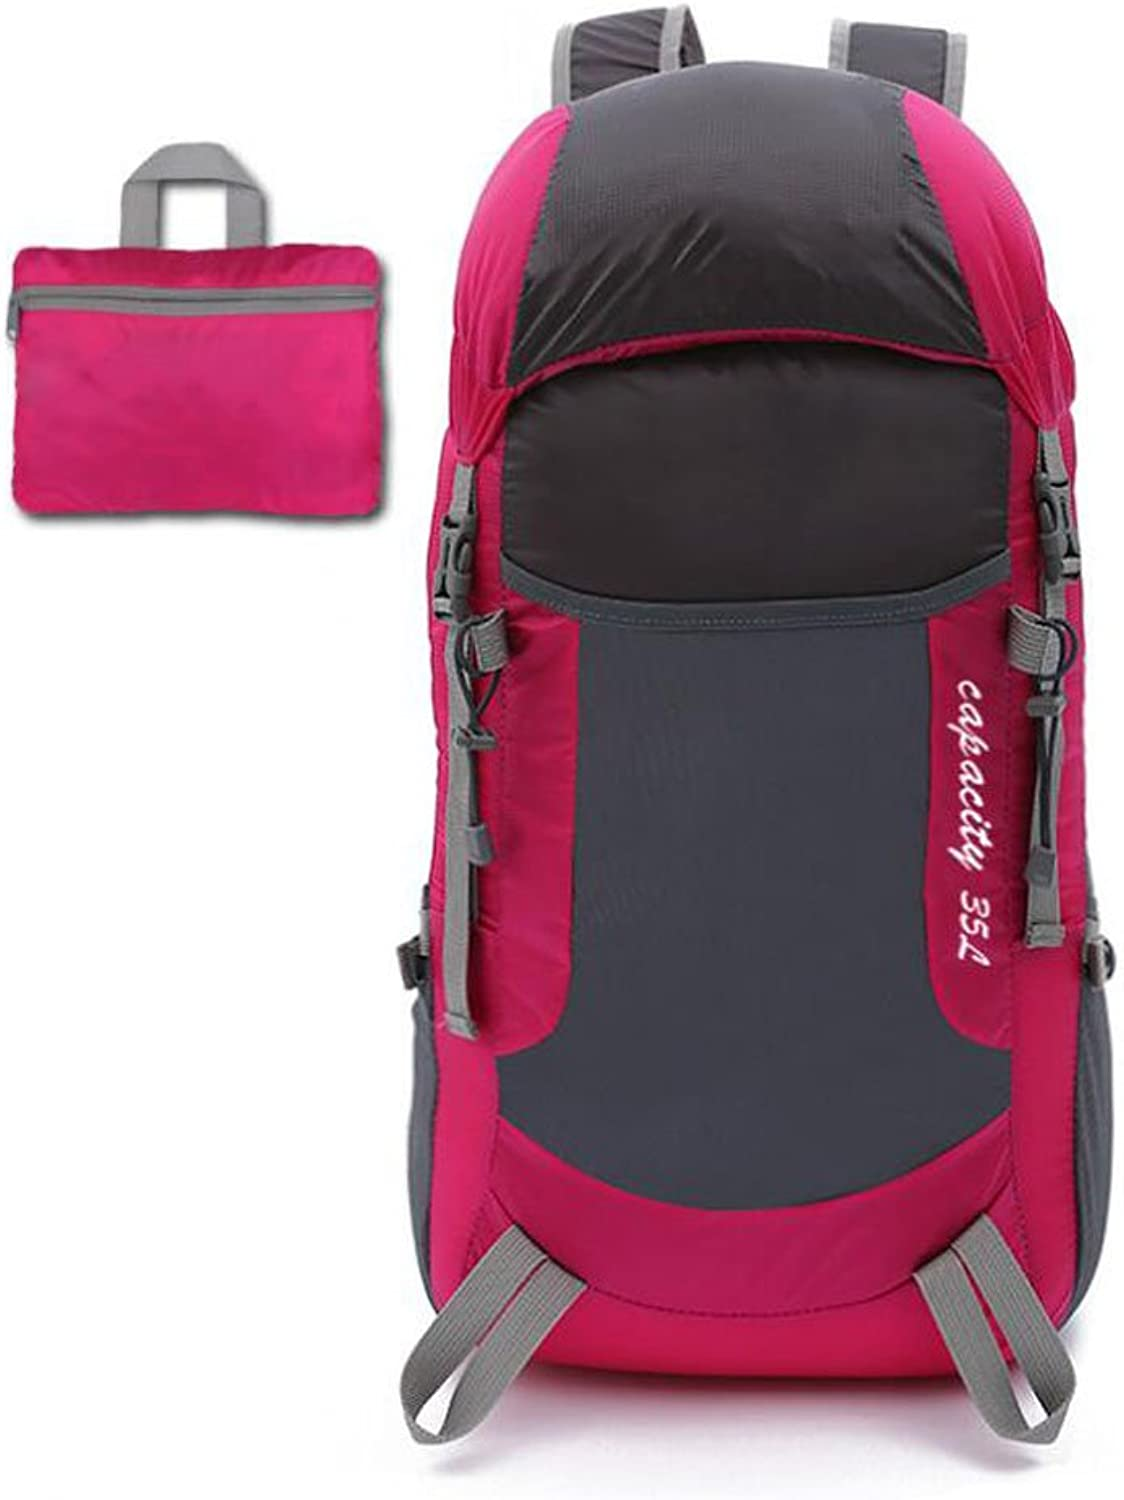 Leisure Folding Pack Excursions Ultralight Skin Pack Travel Backpack Outdoor Backpack Mountaineering Bag Portable Men and Women  Green 35 Liter (color   pink red)